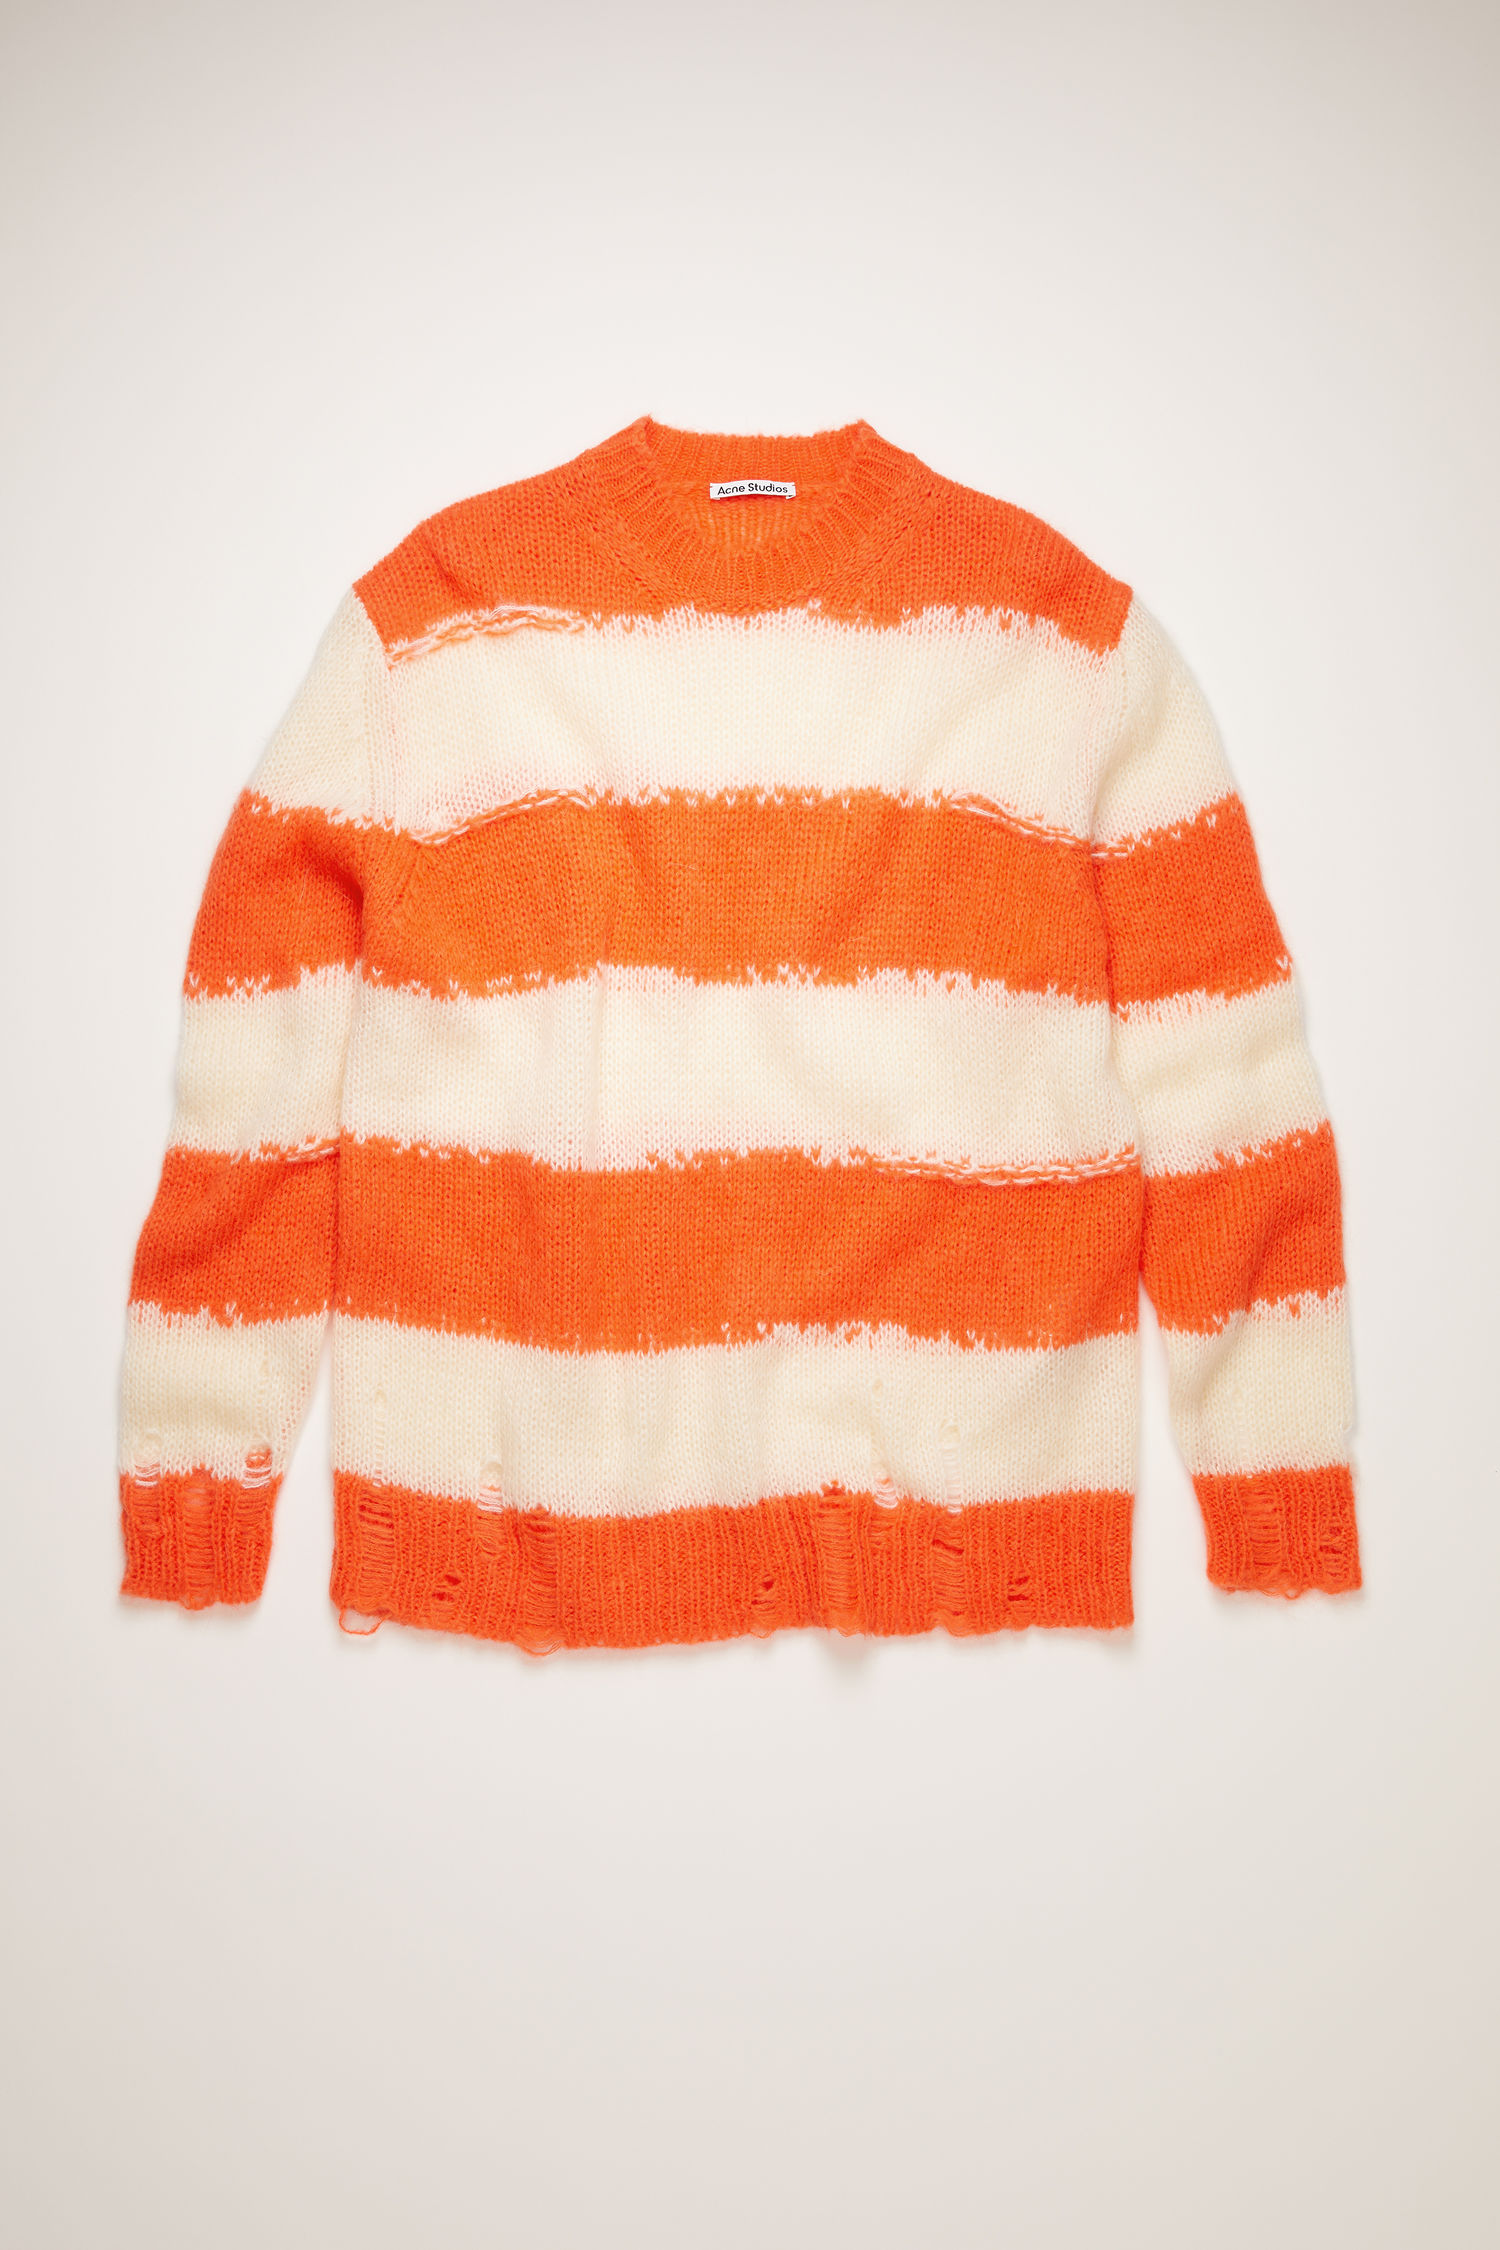 Distressed striped sweater off